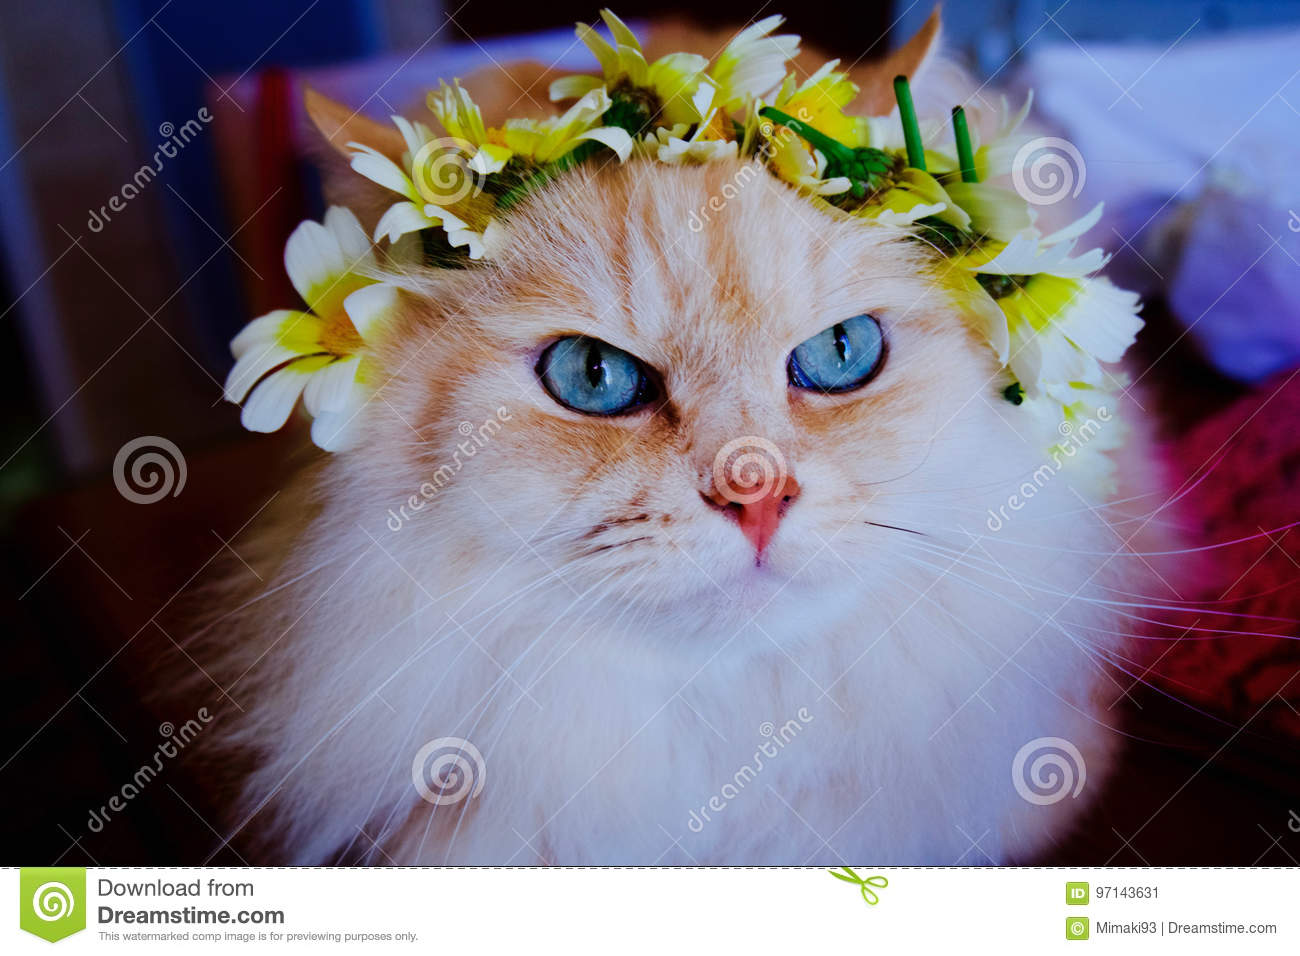 Cat With A Flower Crown In Its Head Stock Image Image Of Kitty